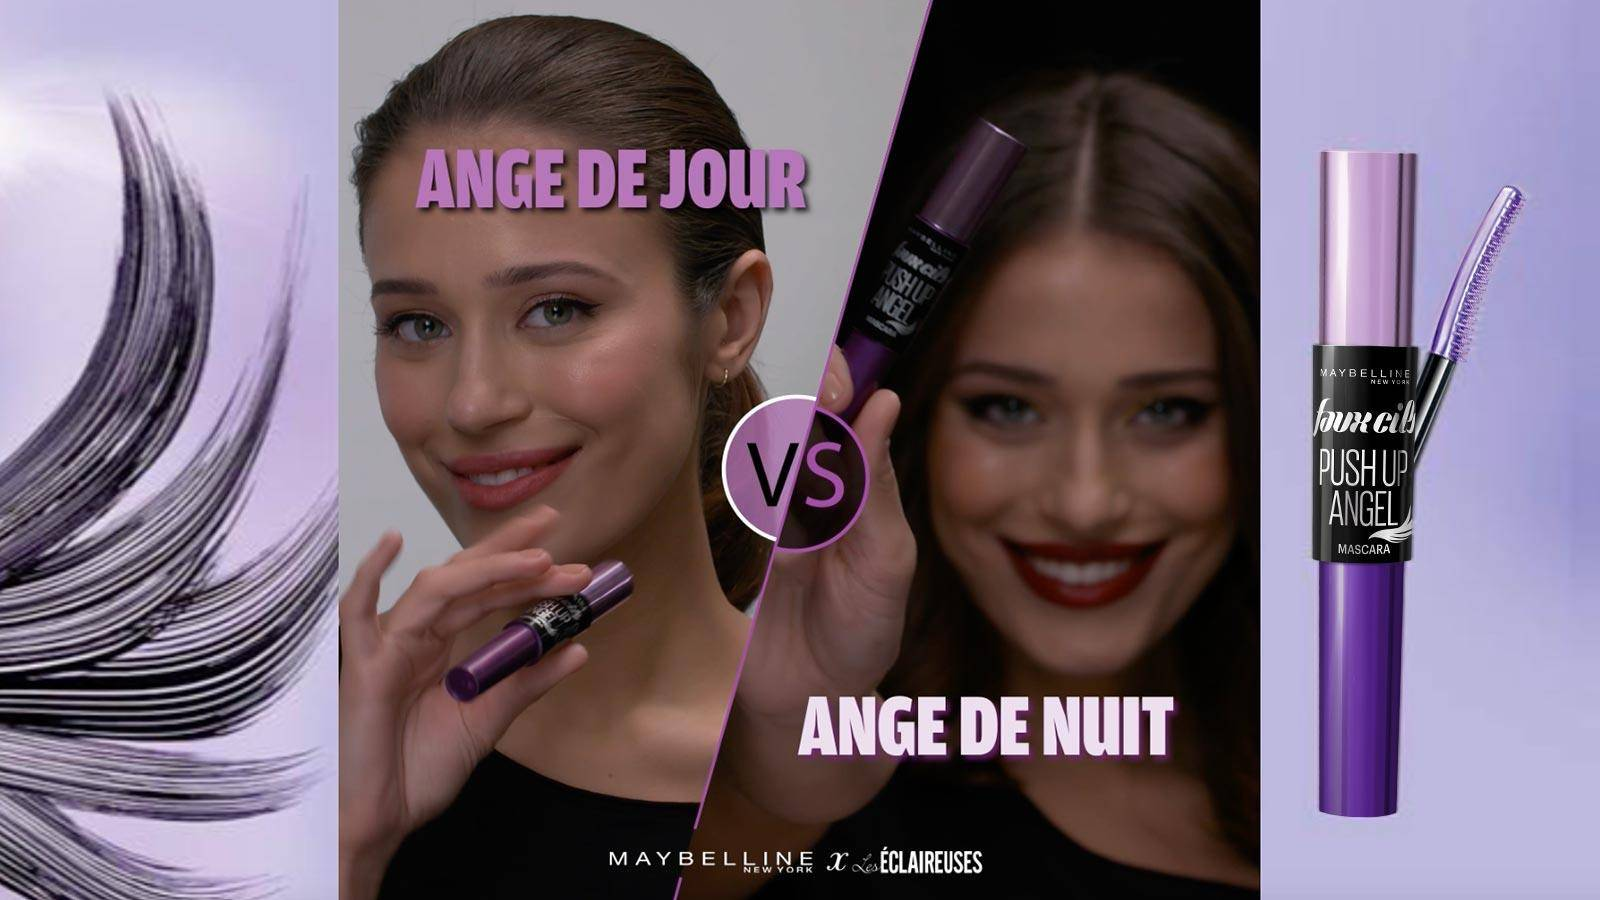 maybelline-push-up-angel-tuto-makeup-les-eclaireuses-video-16x9